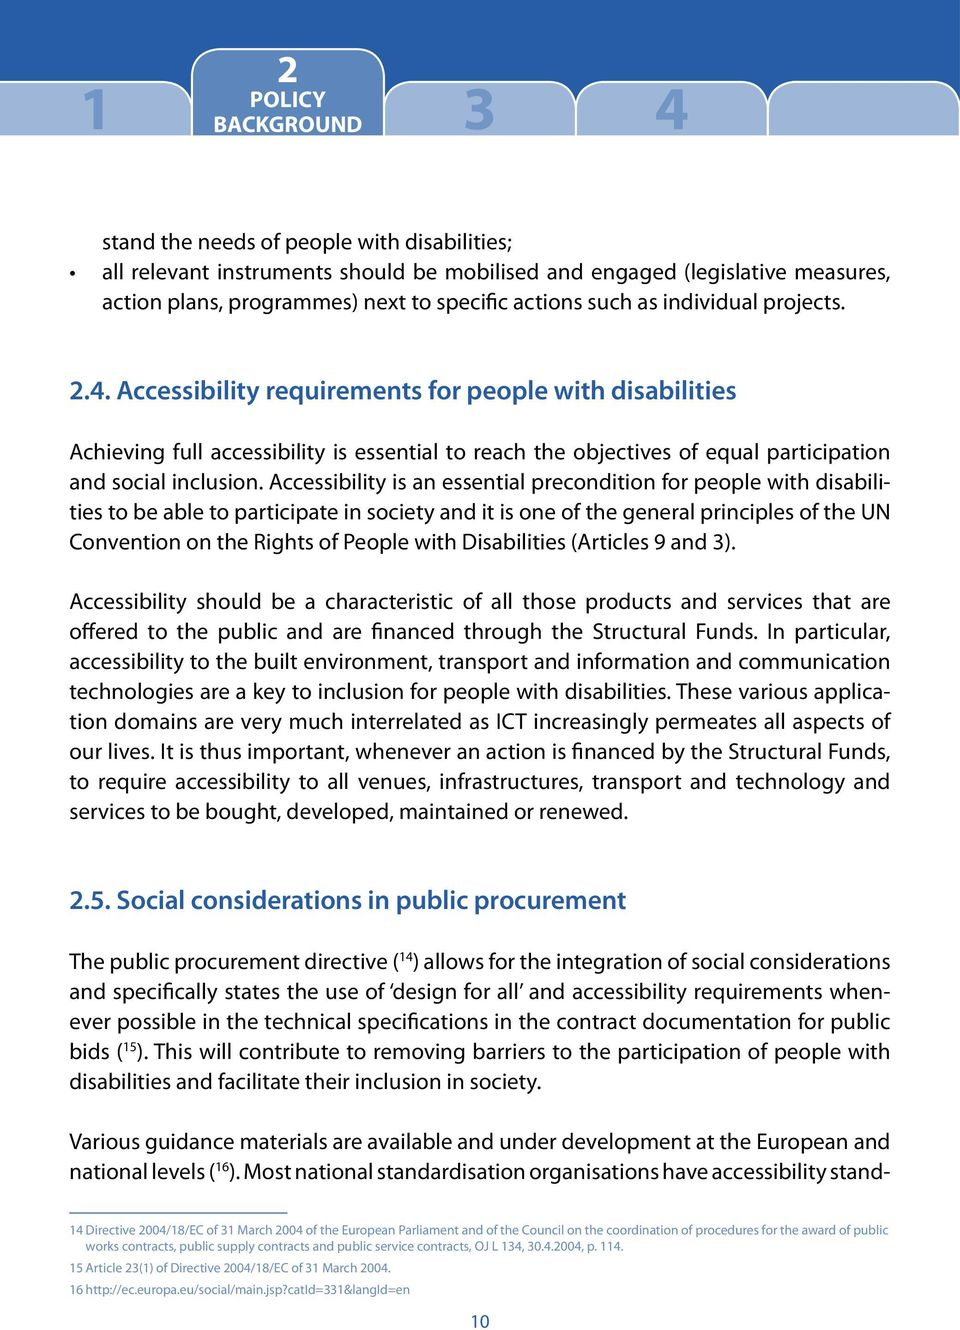 Accessibility requirements for people with disabilities Achieving full accessibility is essential to reach the objectives of equal participation and social inclusion.